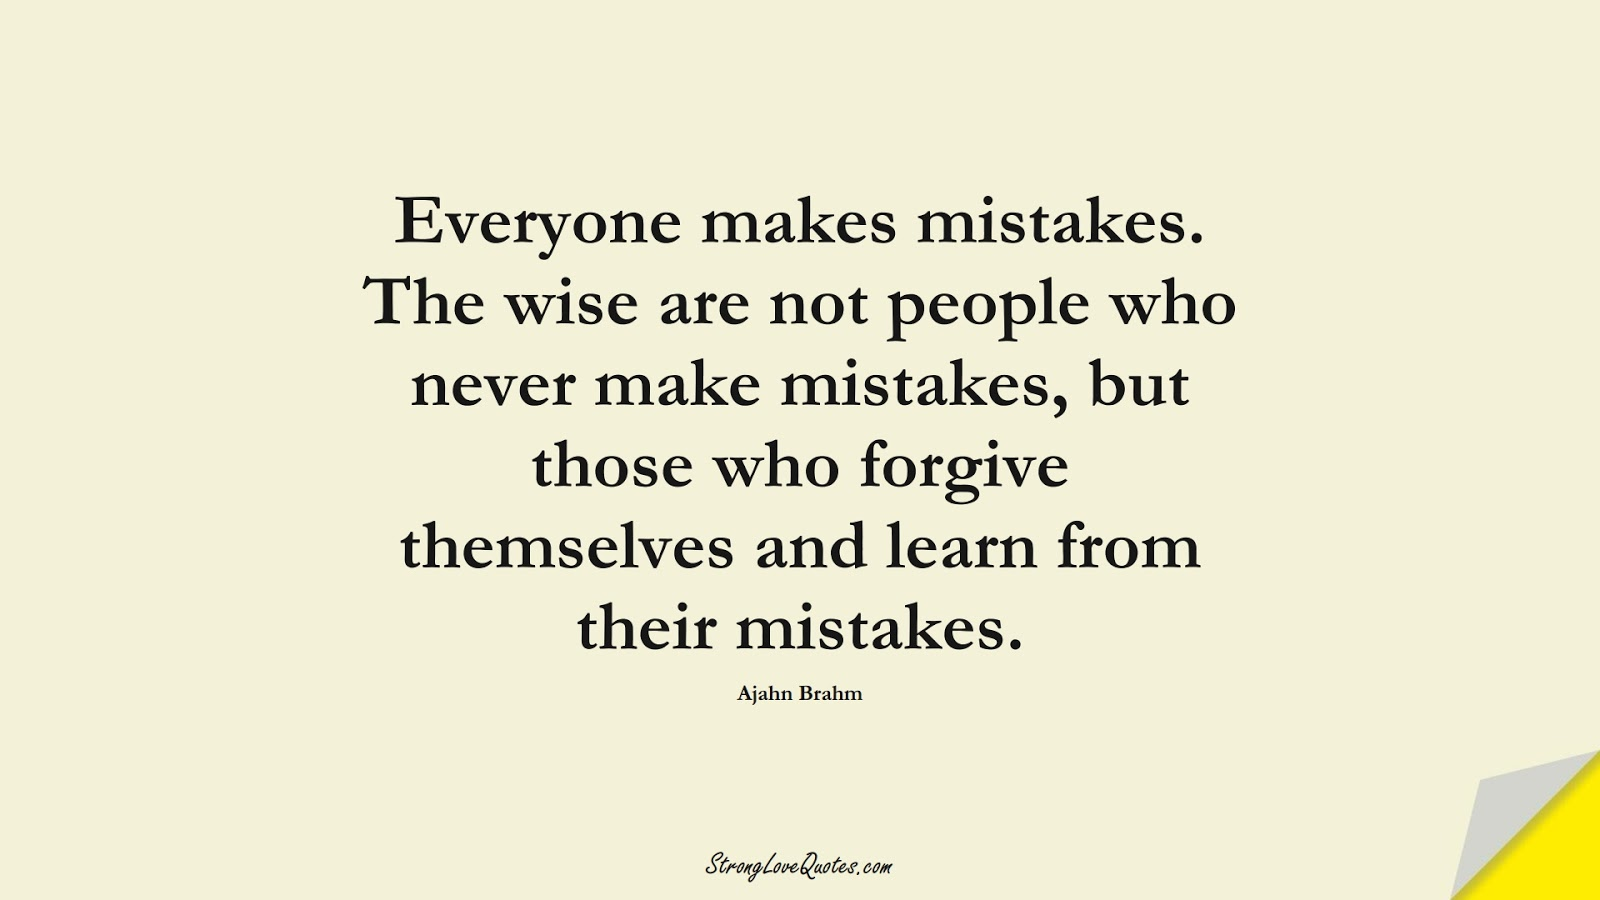 Everyone makes mistakes. The wise are not people who never make mistakes, but those who forgive themselves and learn from their mistakes. (Ajahn Brahm);  #LearningQuotes